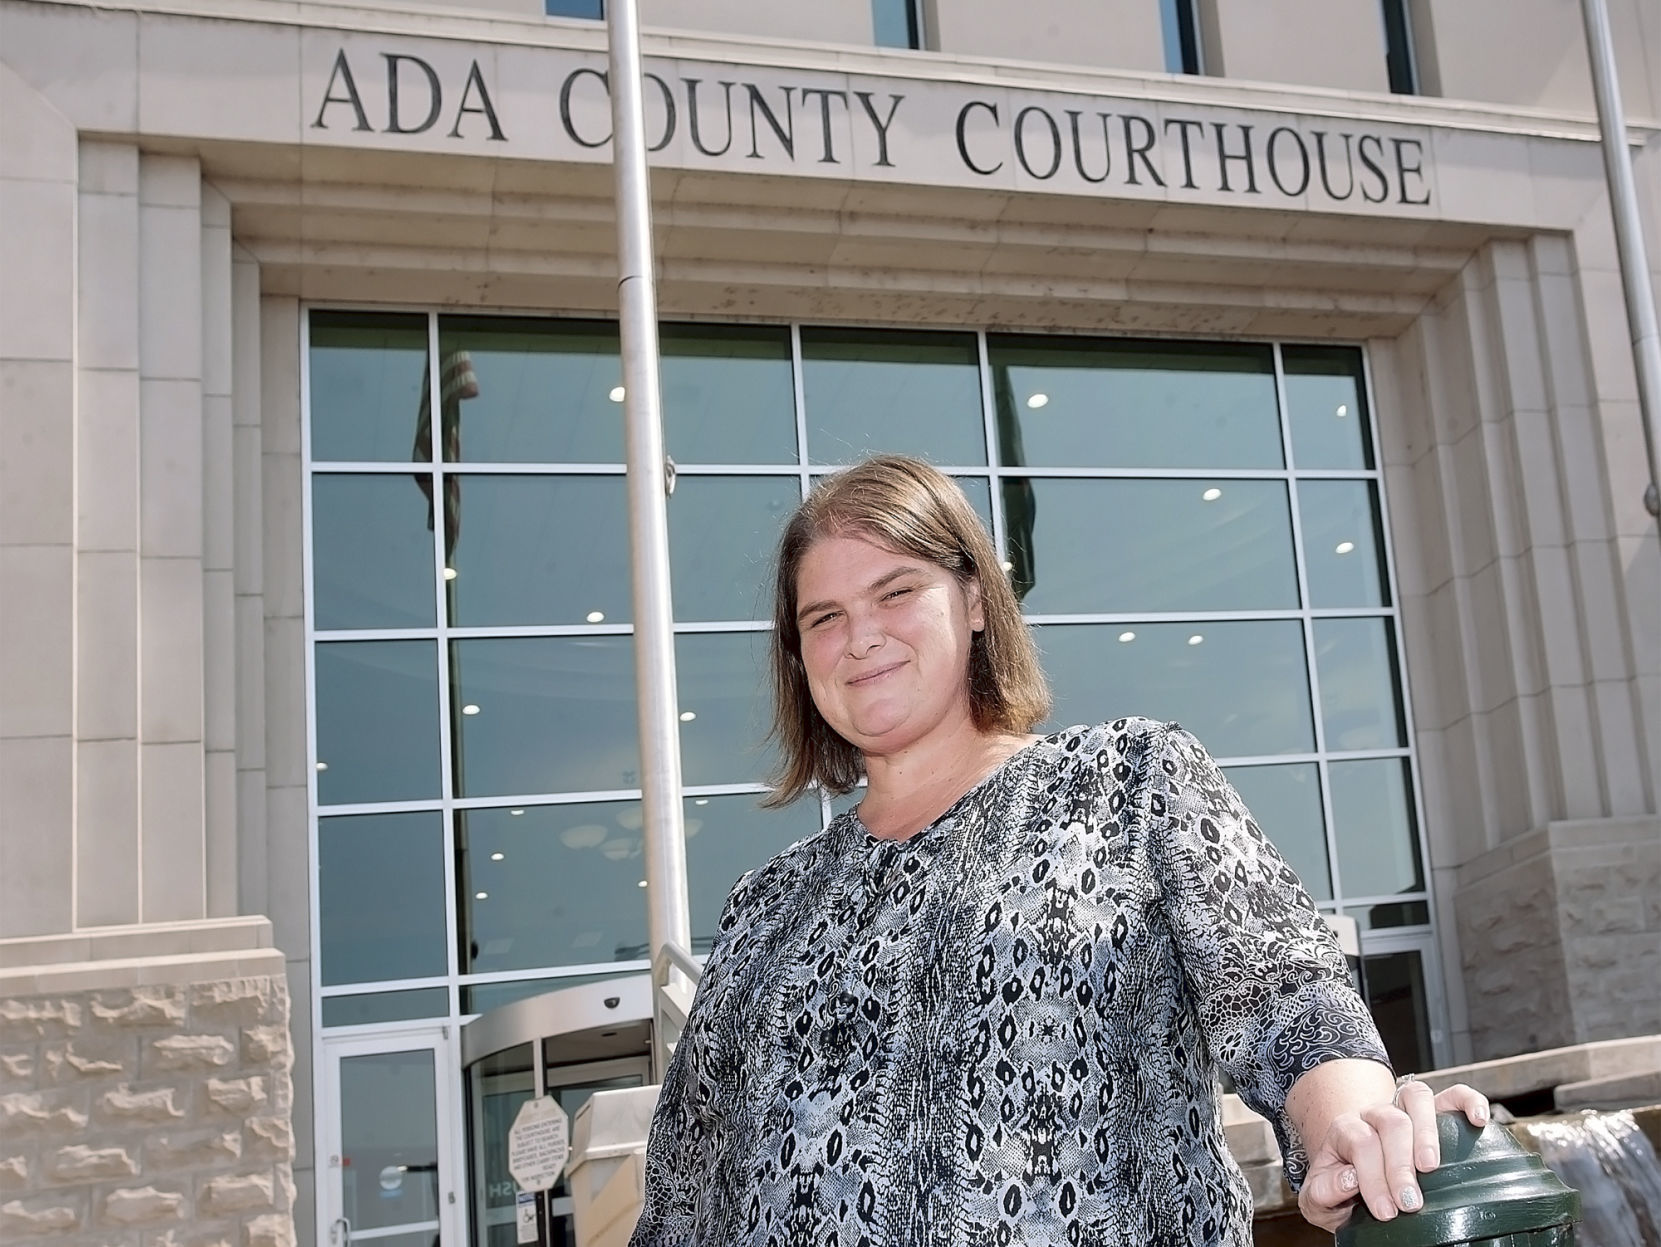 Drug courts and other special courts steer Idahoans away from prison   Idaho Press